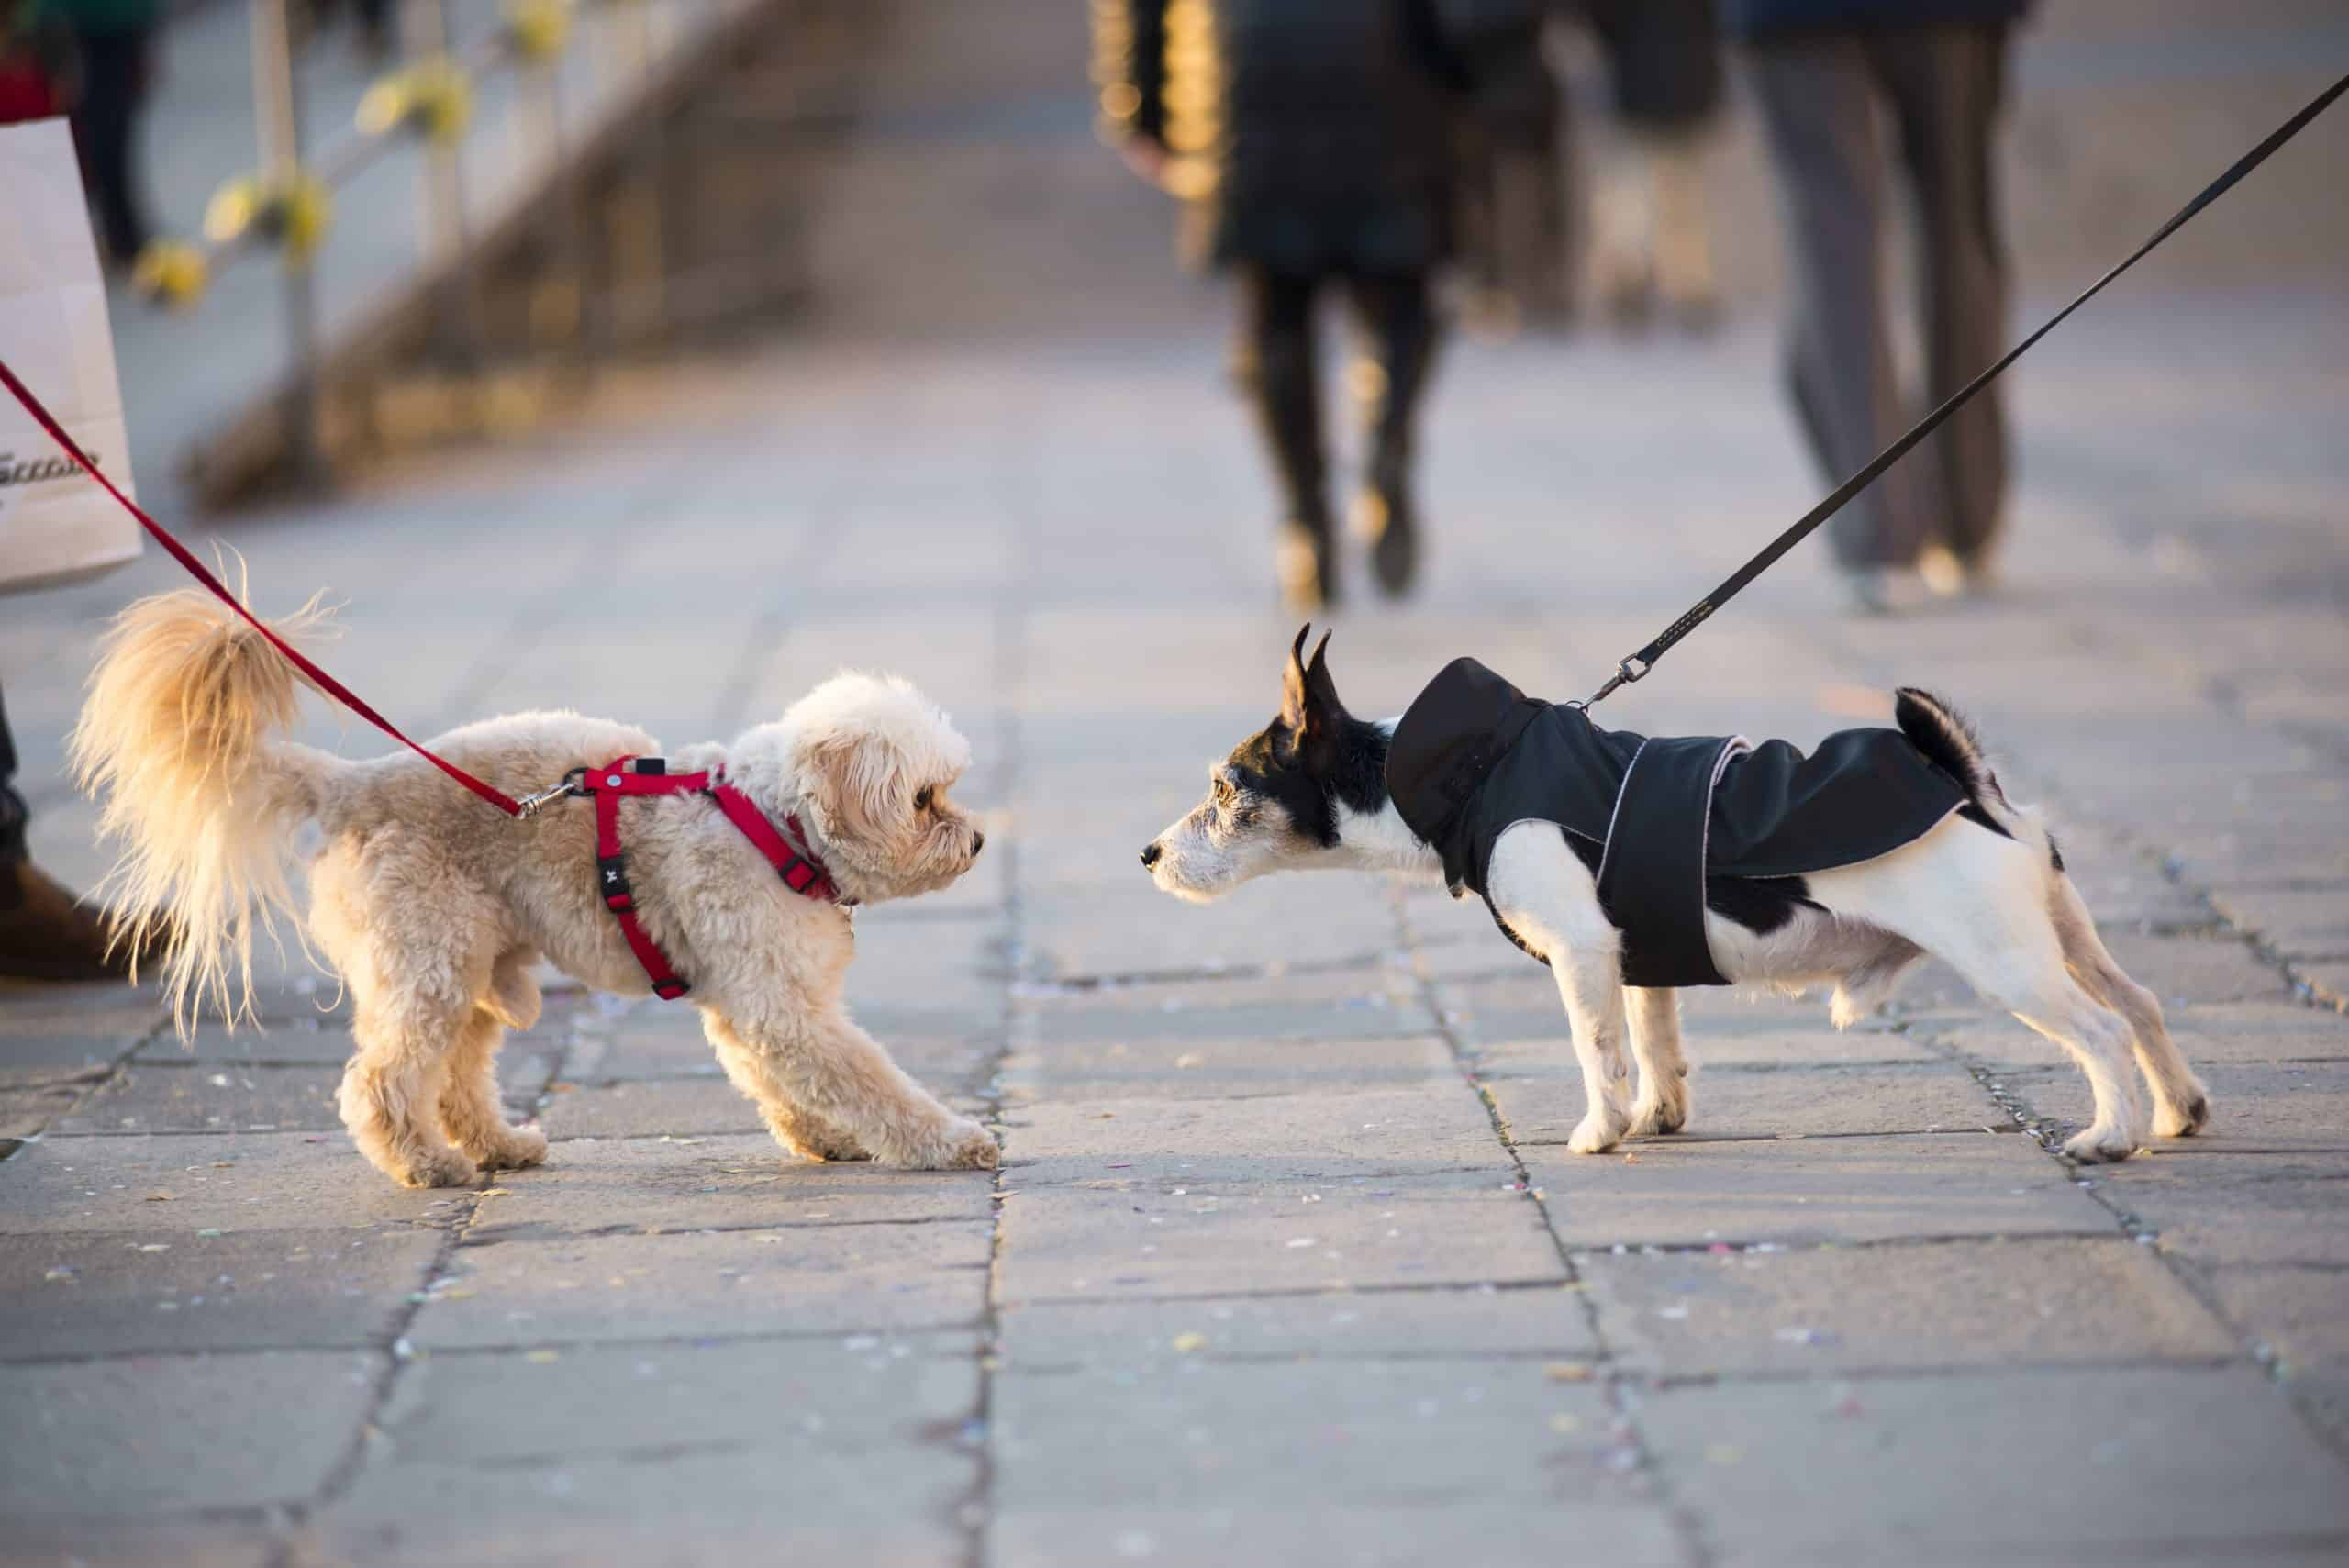 Two dogs meet. Socialization helps keep your dog safe by helping him become confident in a variety of situations.